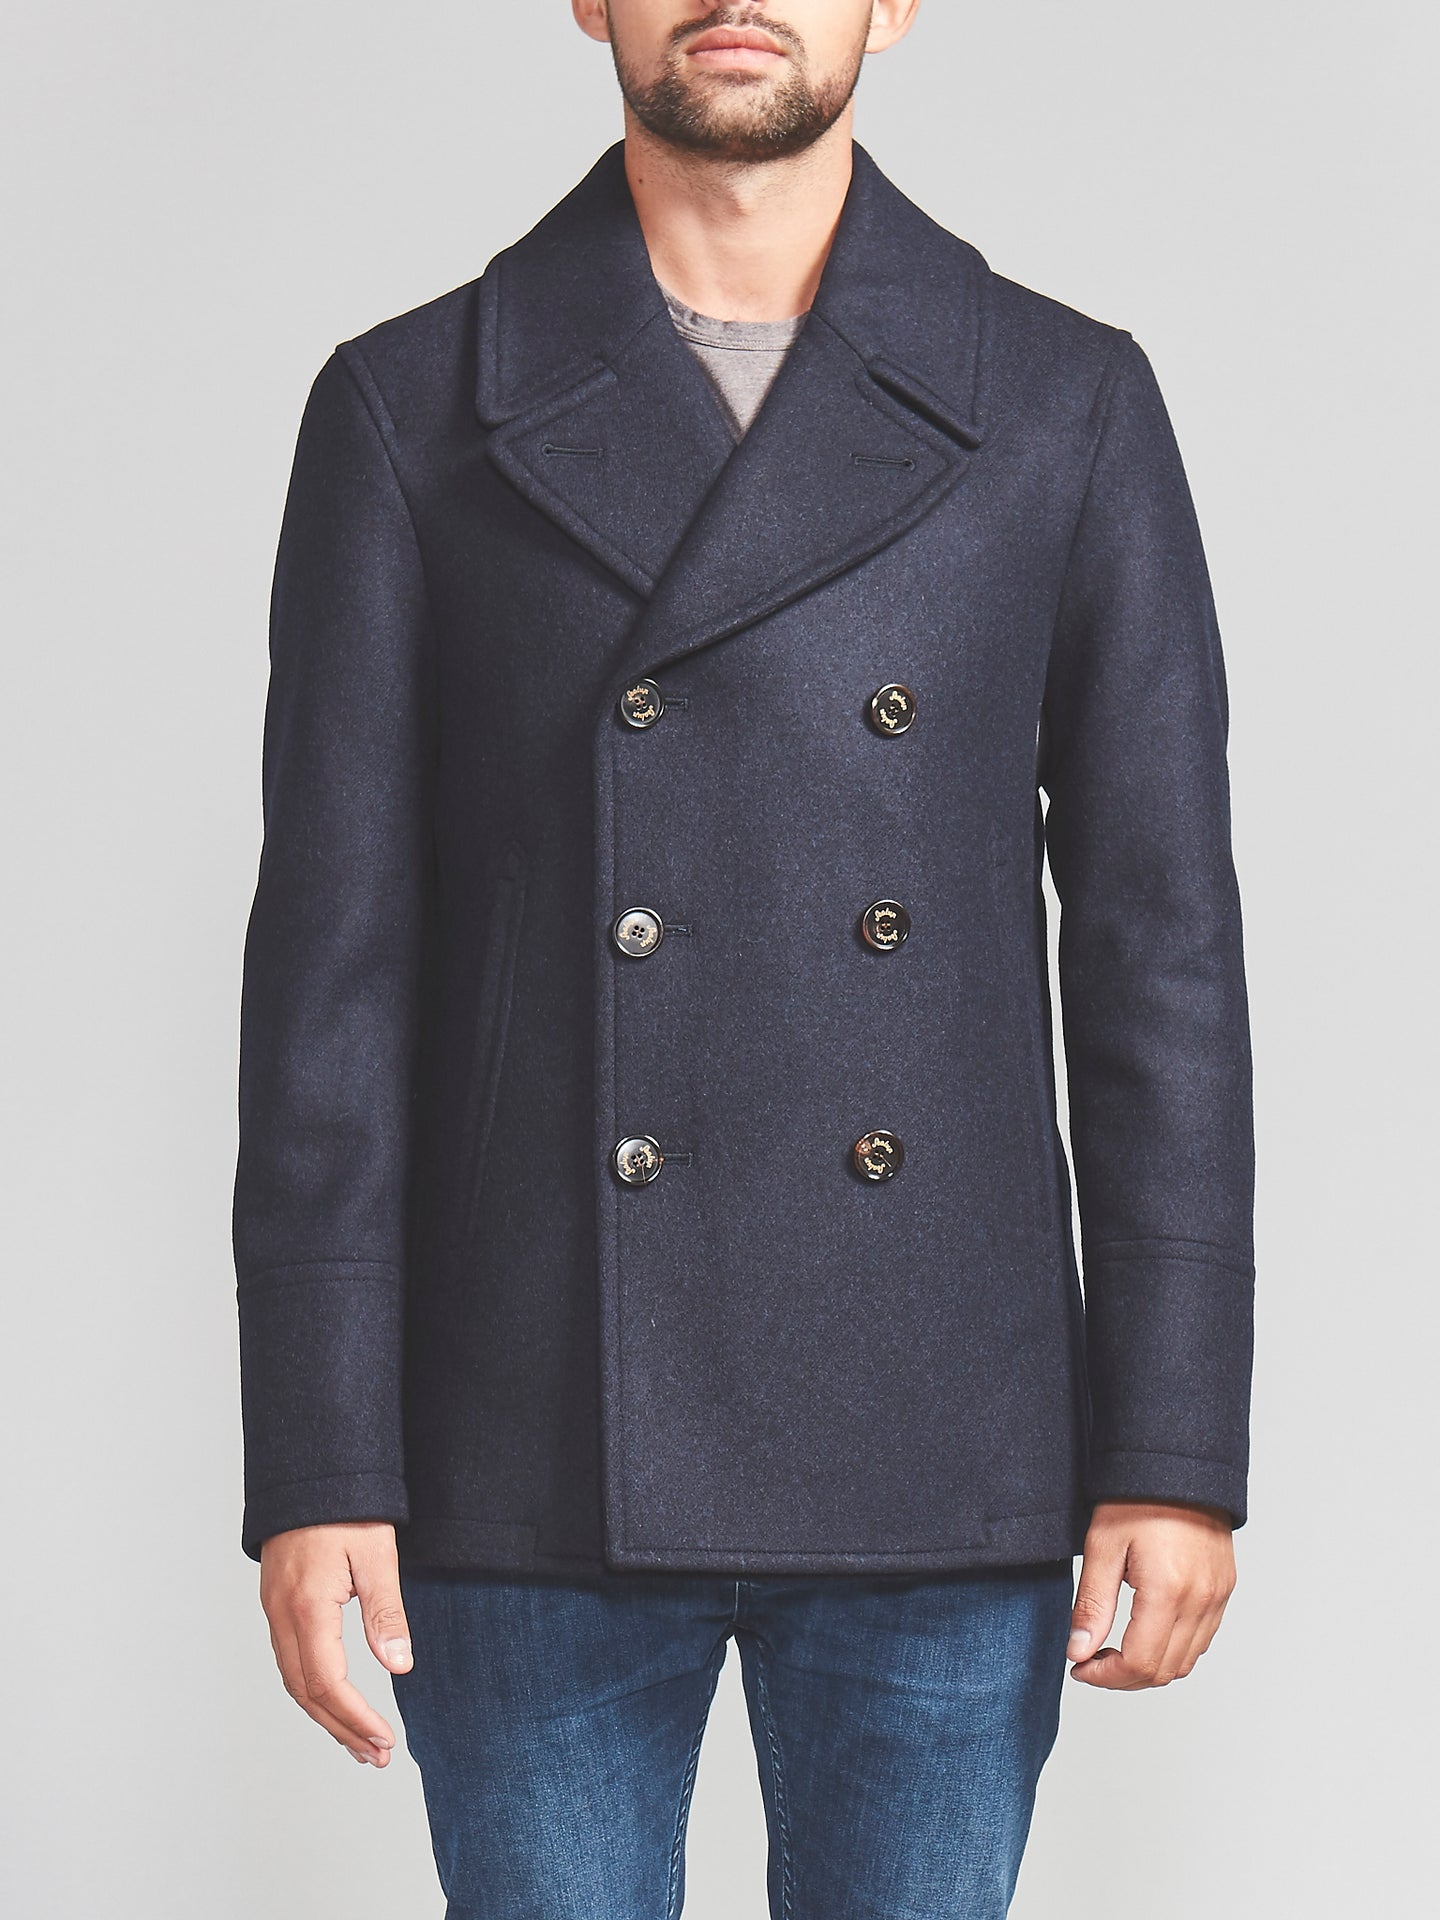 Sealup Peacoat (Navy) - Union 22